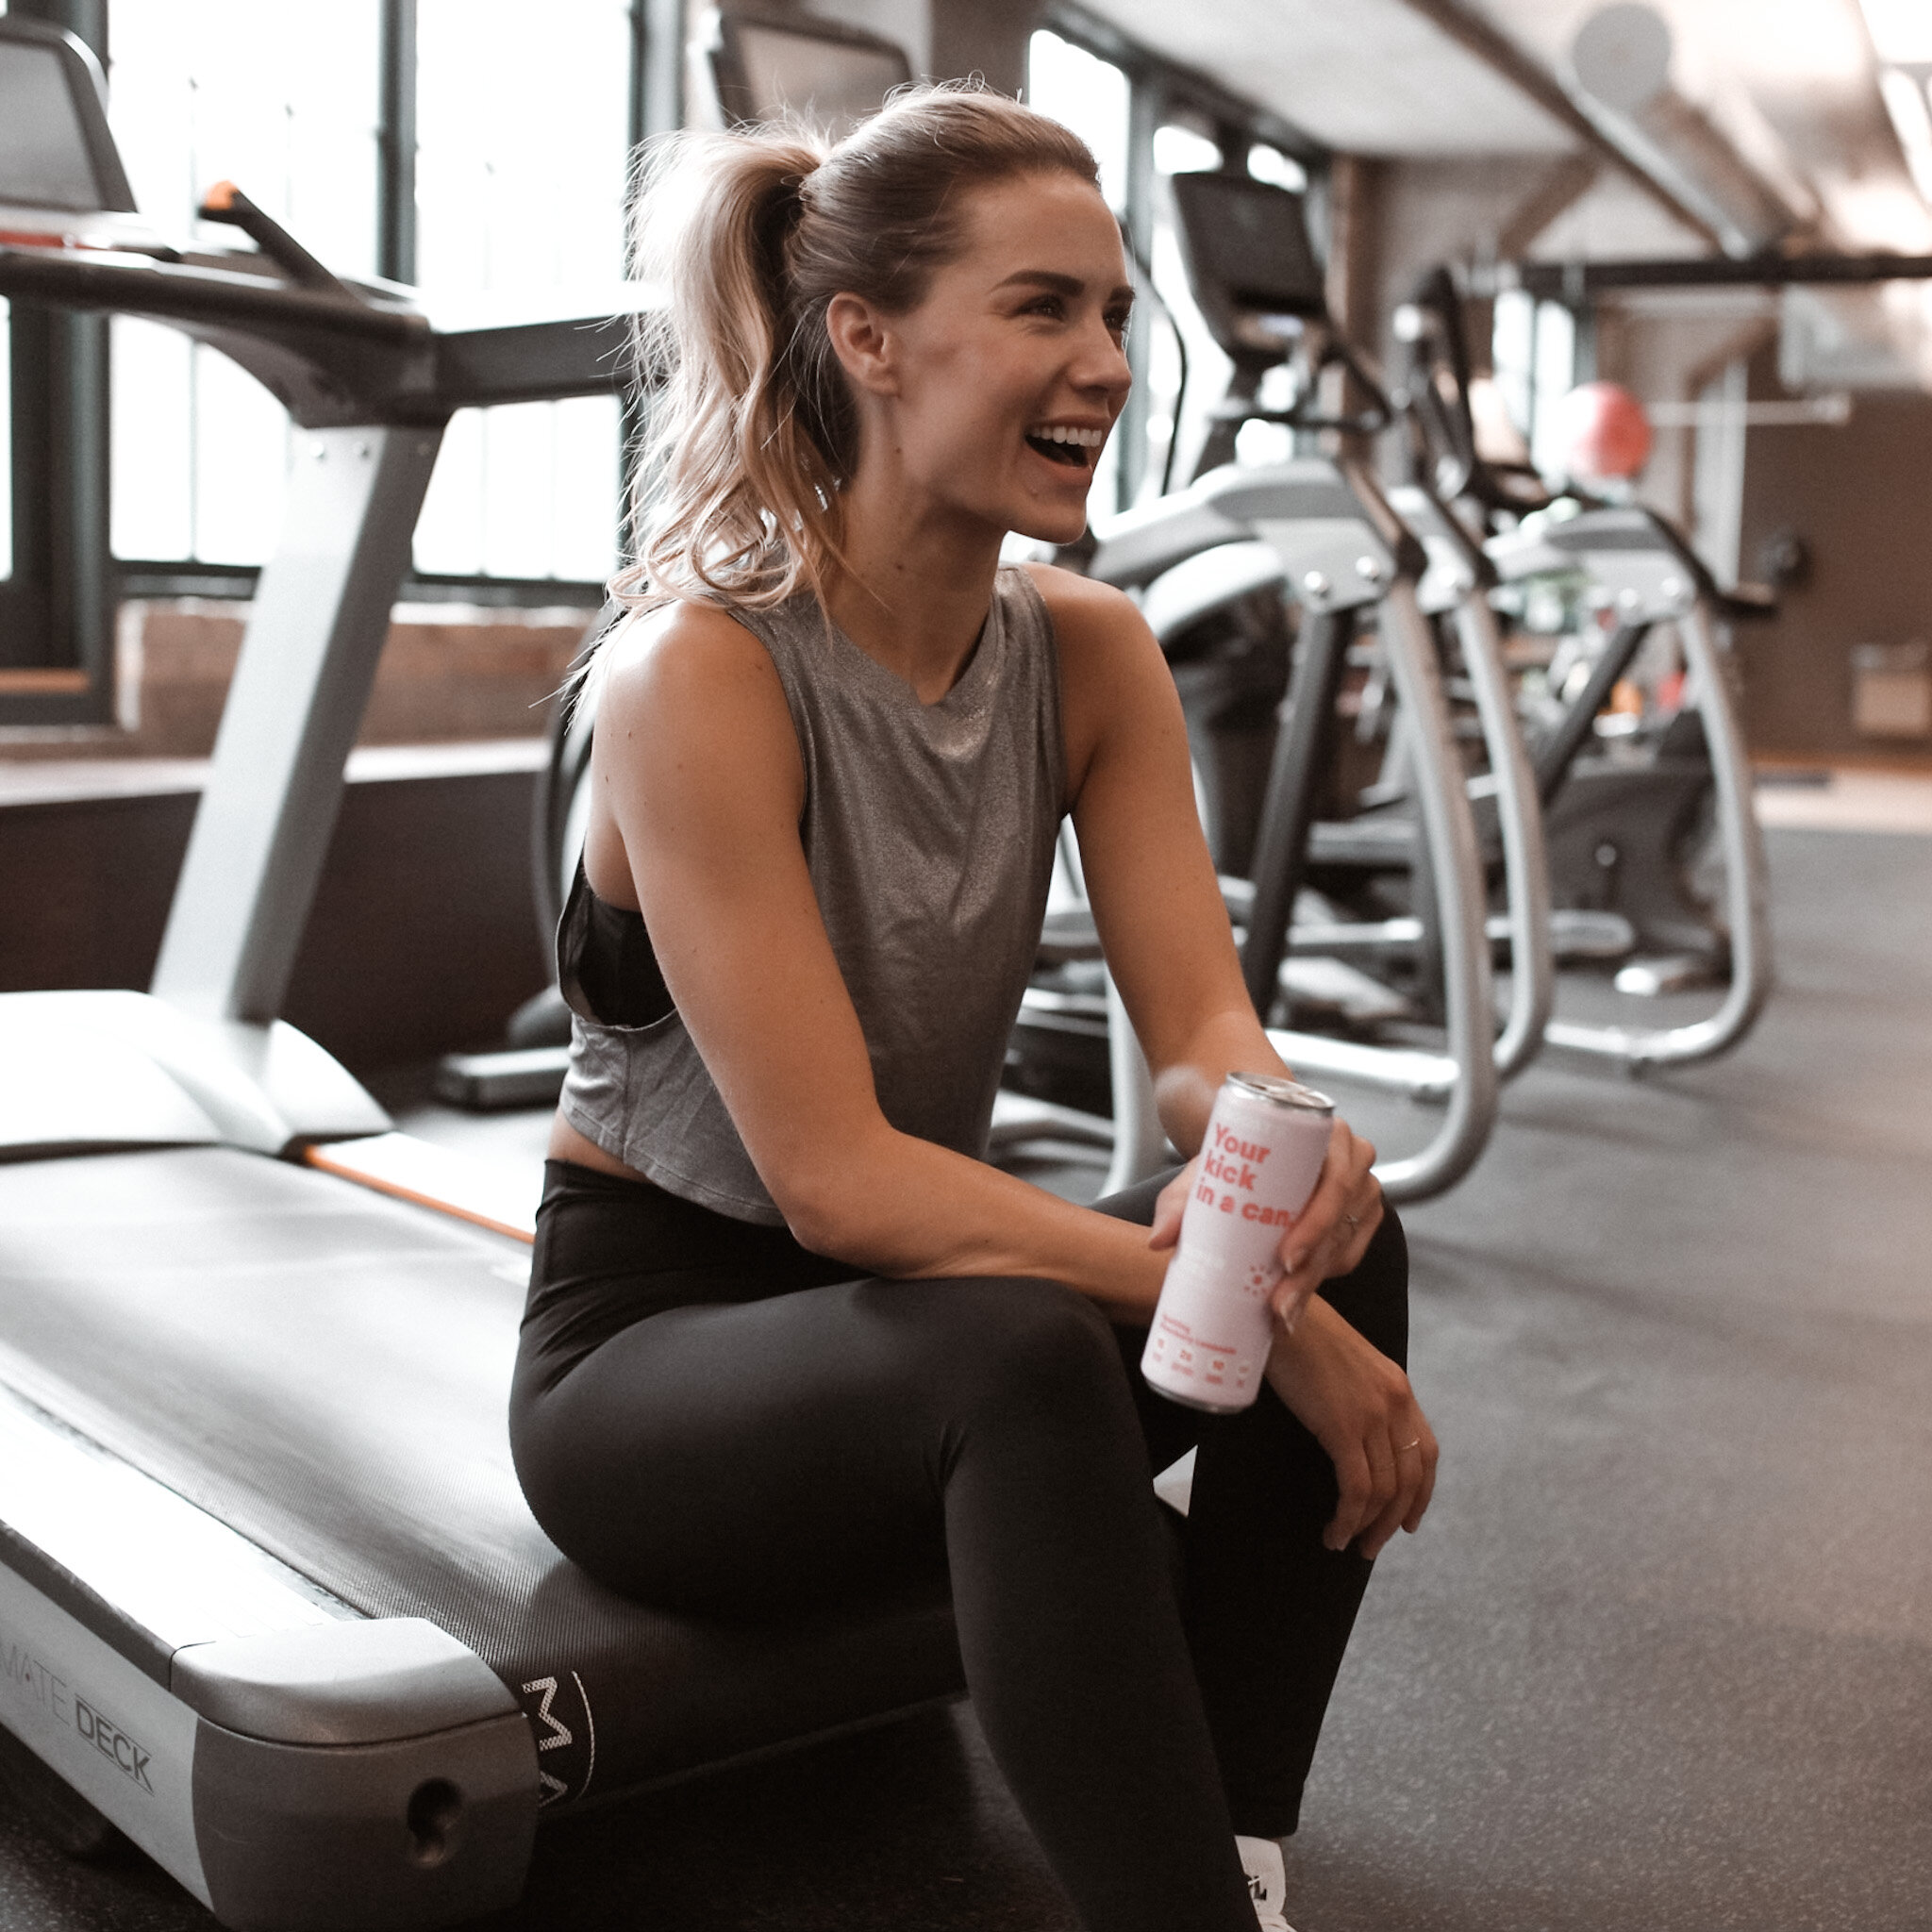 Need a healthy energy boost? - Trust me, I usually do! And I use EBOOST to get it! I drink at least one of their products almost every day, not only to keep myself productive but also to get my butt into the gym!Click the button below for 15% off your order, or use code KEEGAN at checkout!